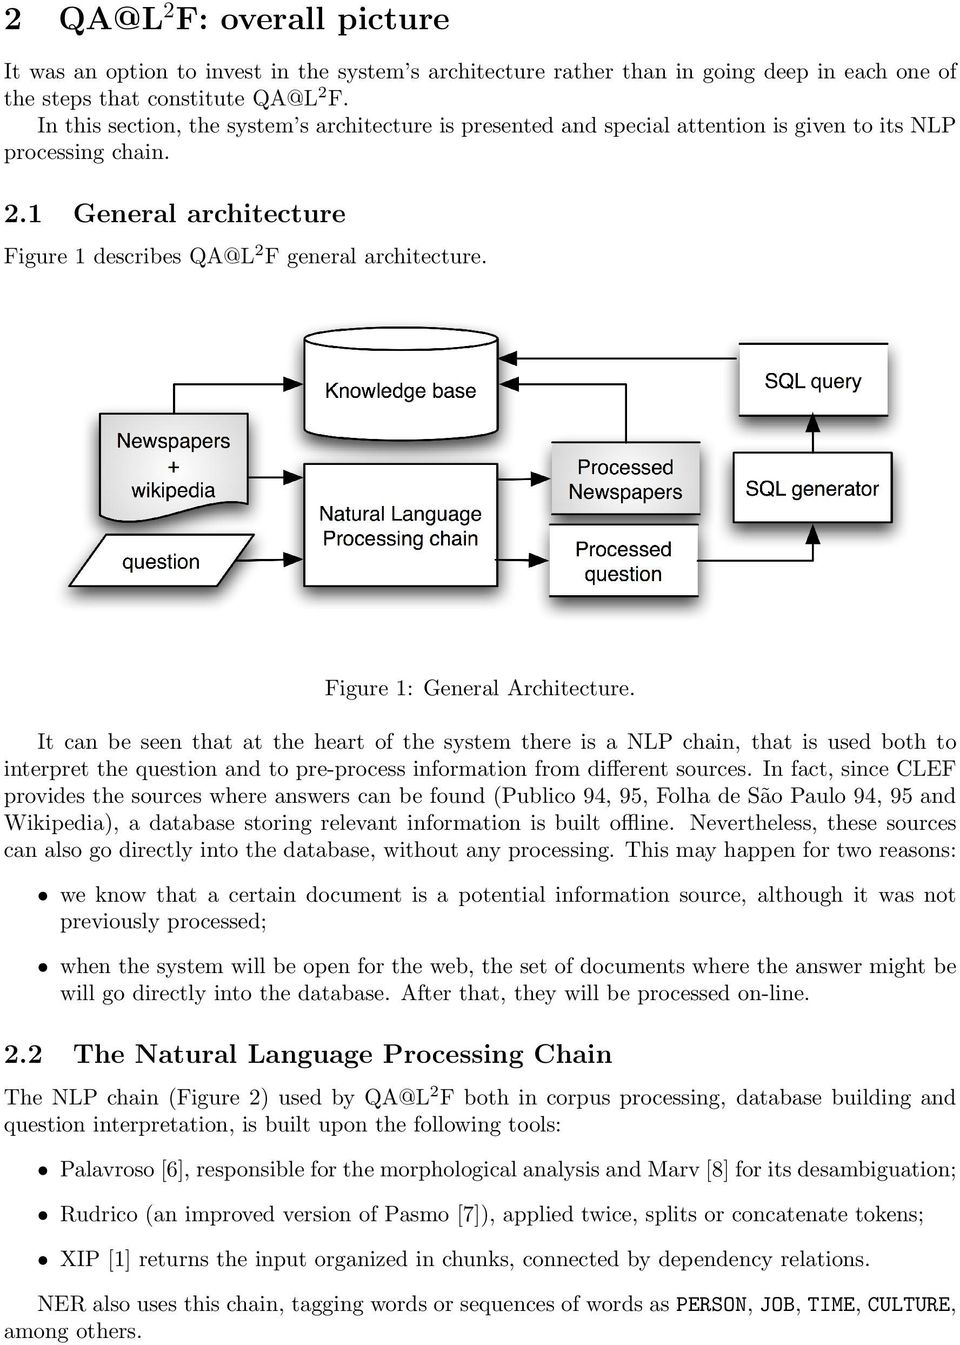 Figure 1: General Architecture. It can be seen that at the heart of the system there is a NLP chain, that is used both to interpret the question and to pre-process information from different sources.